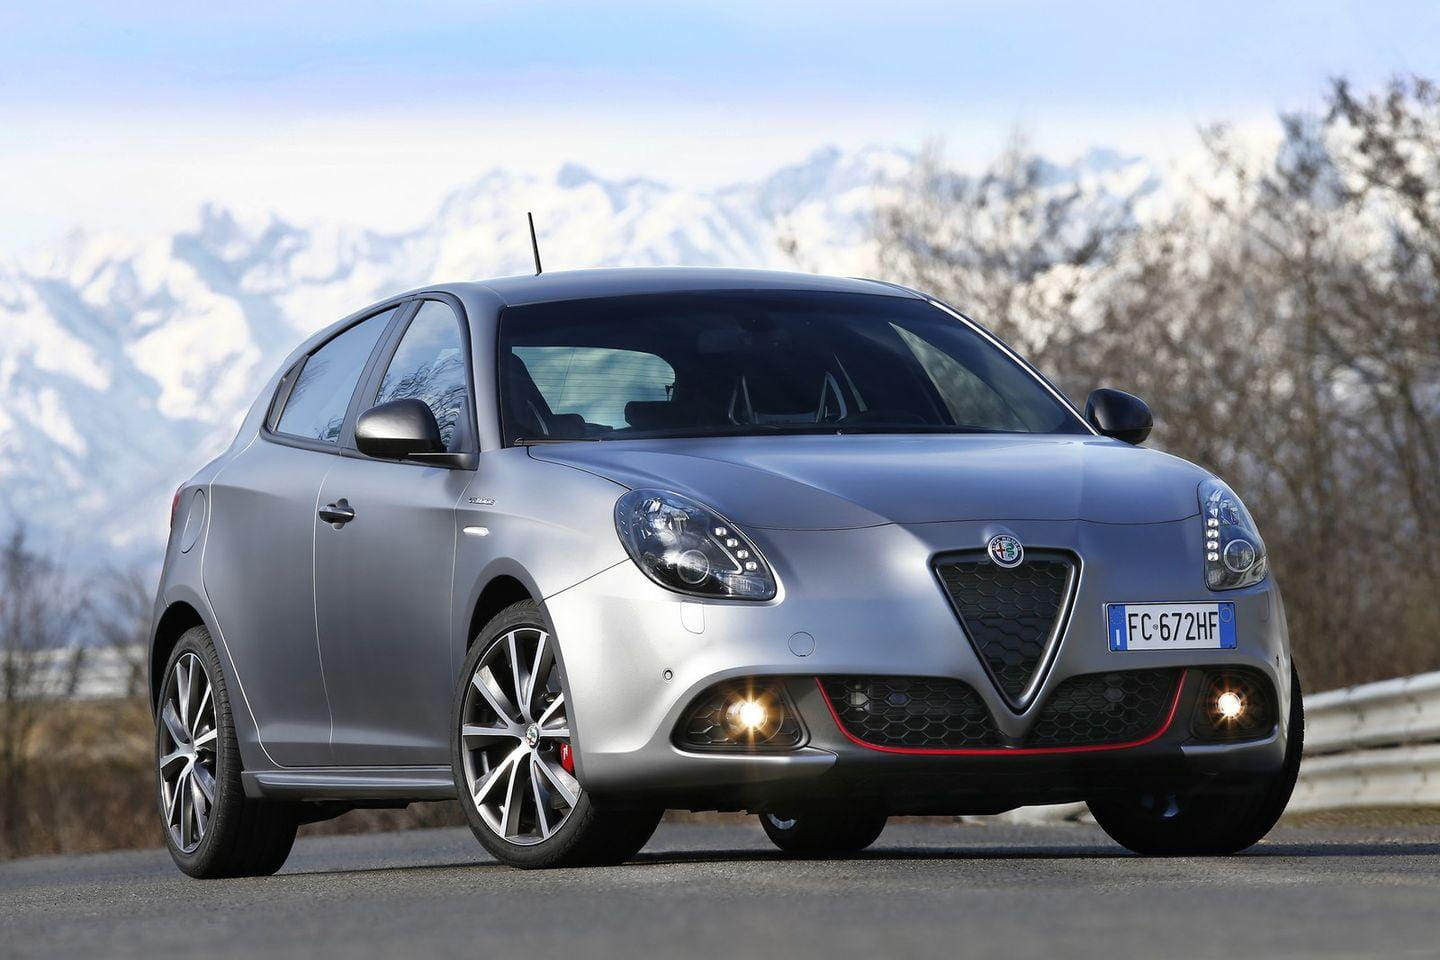 alfa romeo giulietta y giulietta veloce precios prueba ficha t cnica fotos y noticias. Black Bedroom Furniture Sets. Home Design Ideas